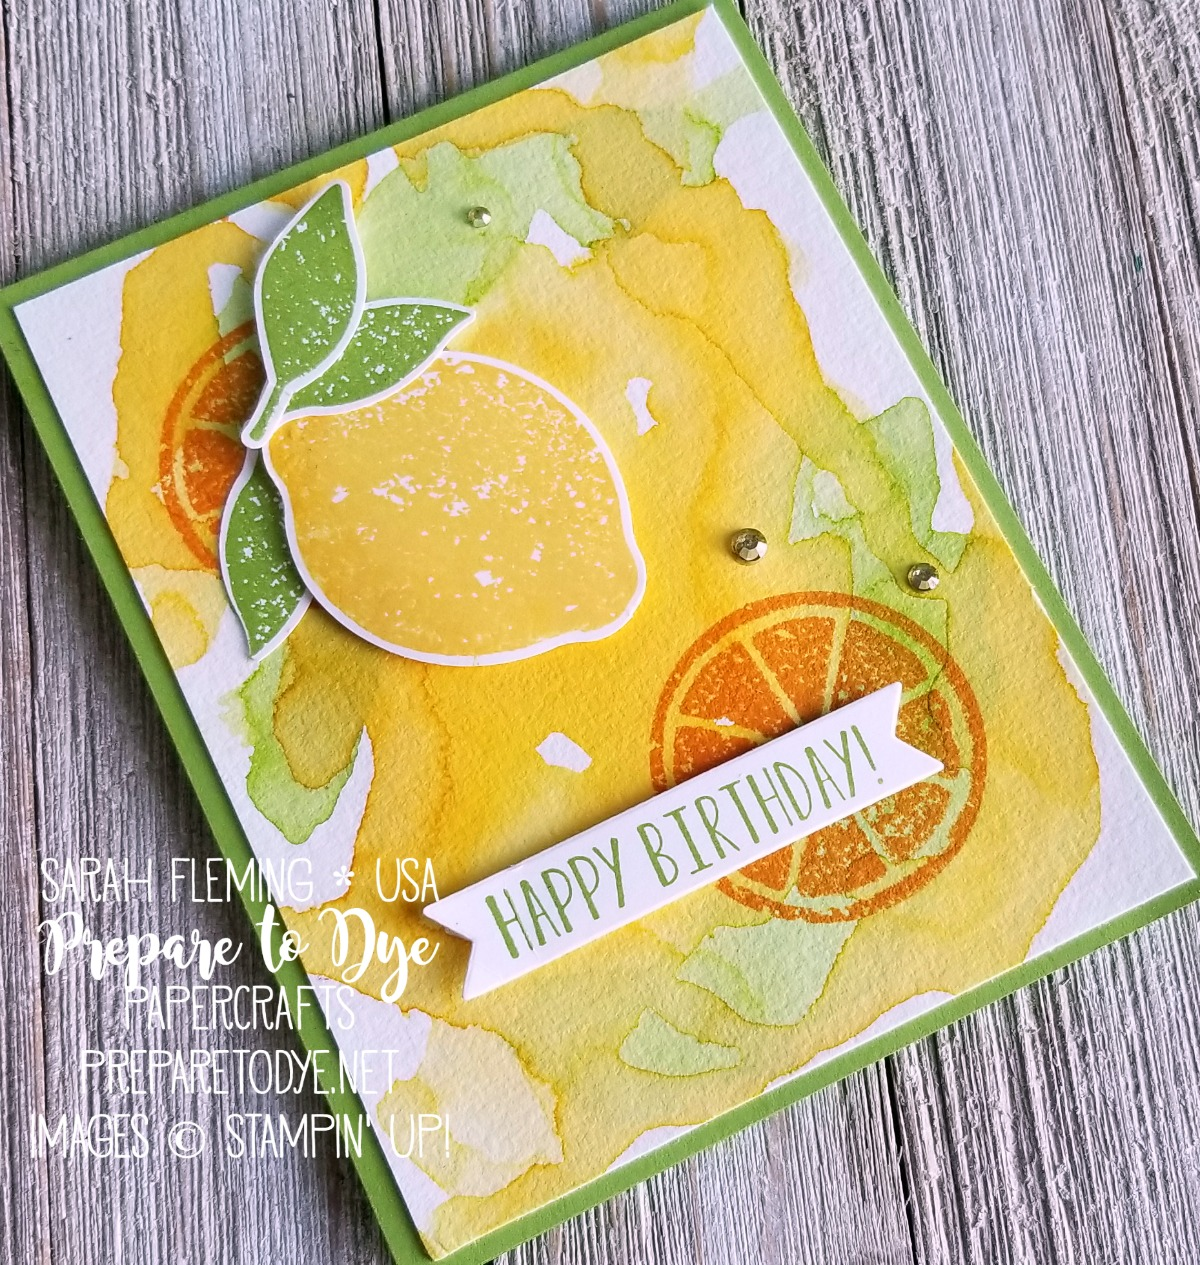 Stampin' Up! handmade birthday card using Lemon Zest stamps with Lemon Builder Punch featuring new colors Granny Apple Green and Mango Melody - Sarah Fleming - Prepare to Dye Papercrafts